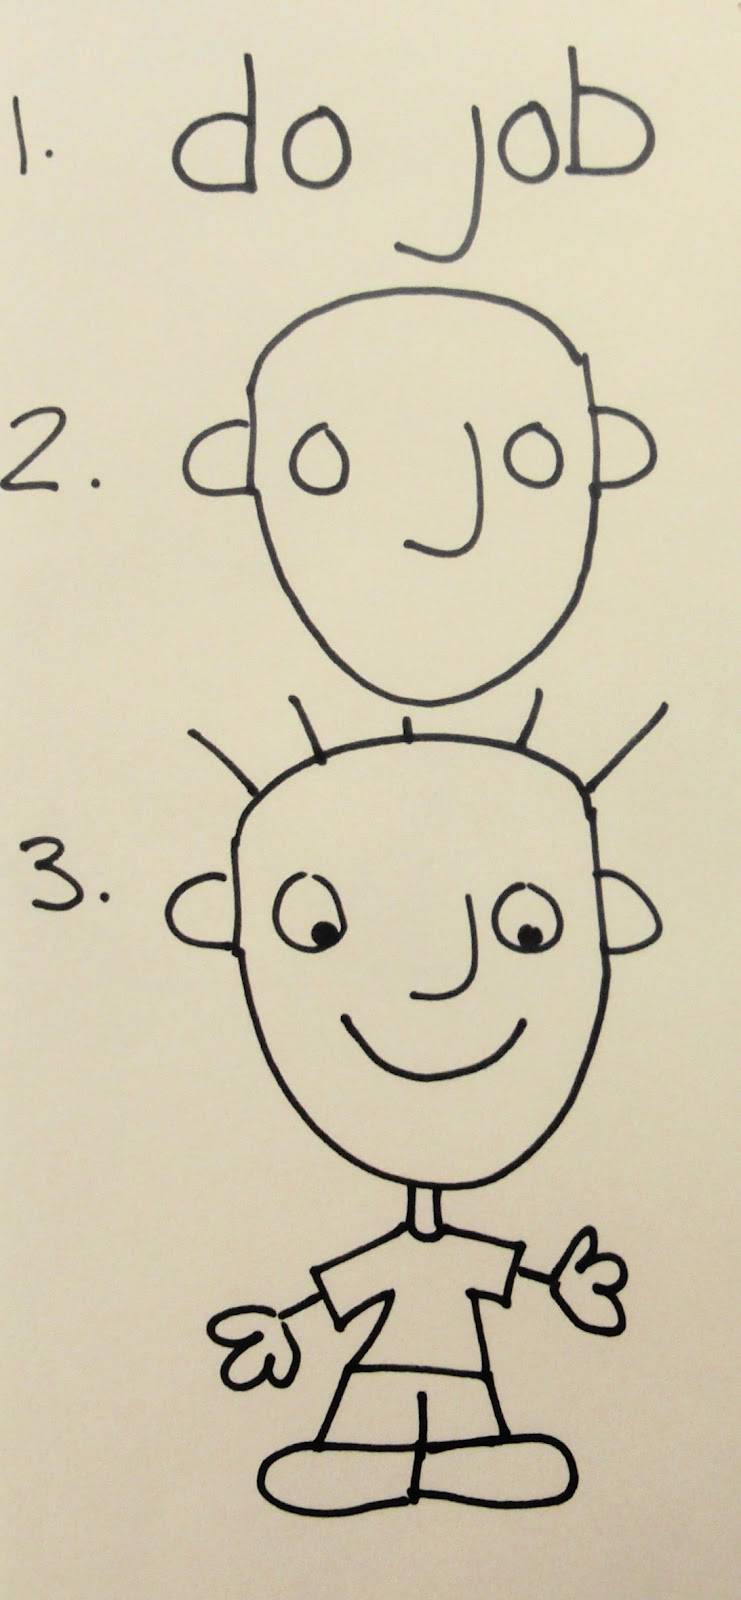 chin colle a simple way to draw a person do job person